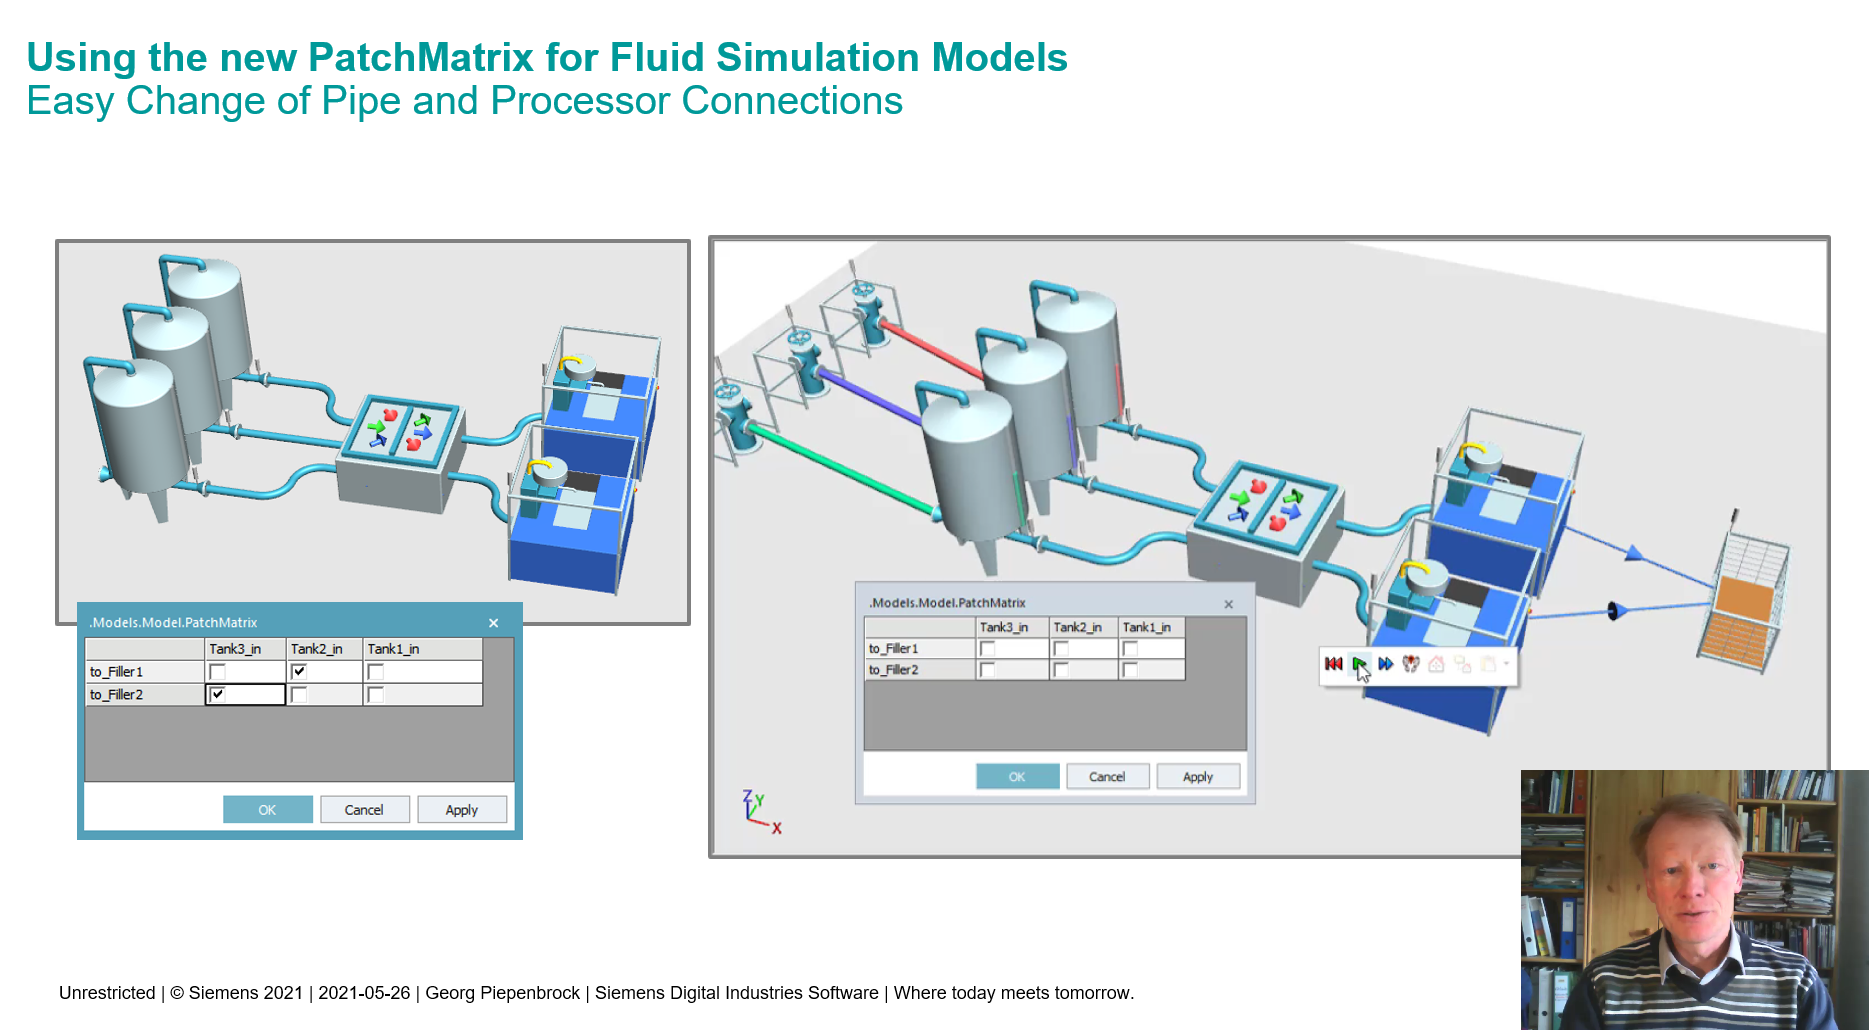 Using the new PatchMatrix for Fluid Simulation ModelsEasy Change of Pipe and Processor Connections